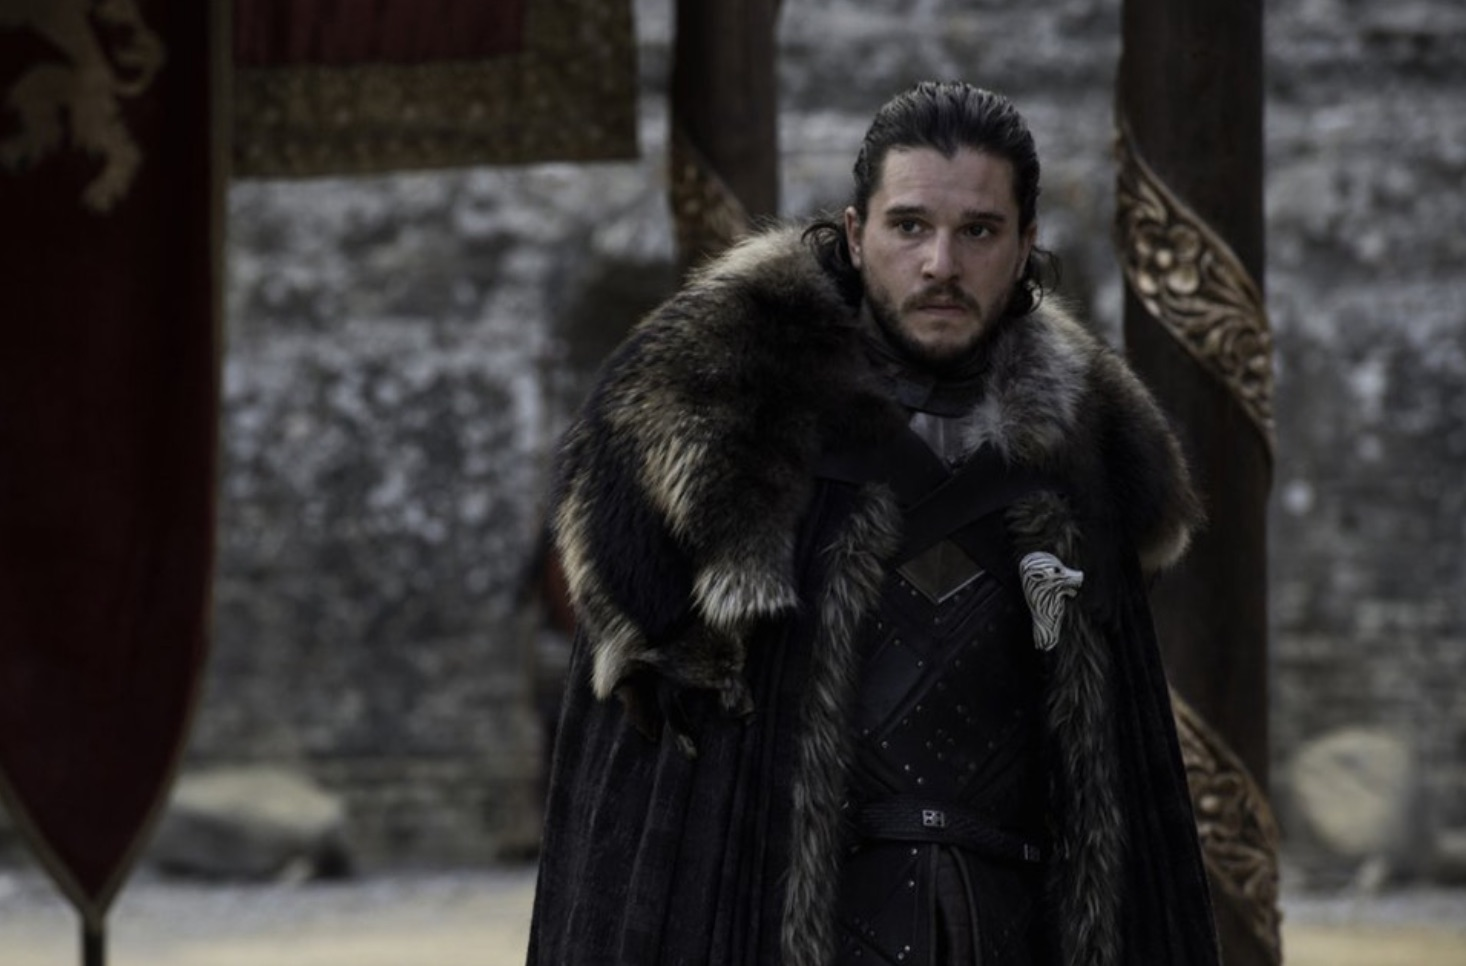 'Games of Thrones' street name in Australia causes upset